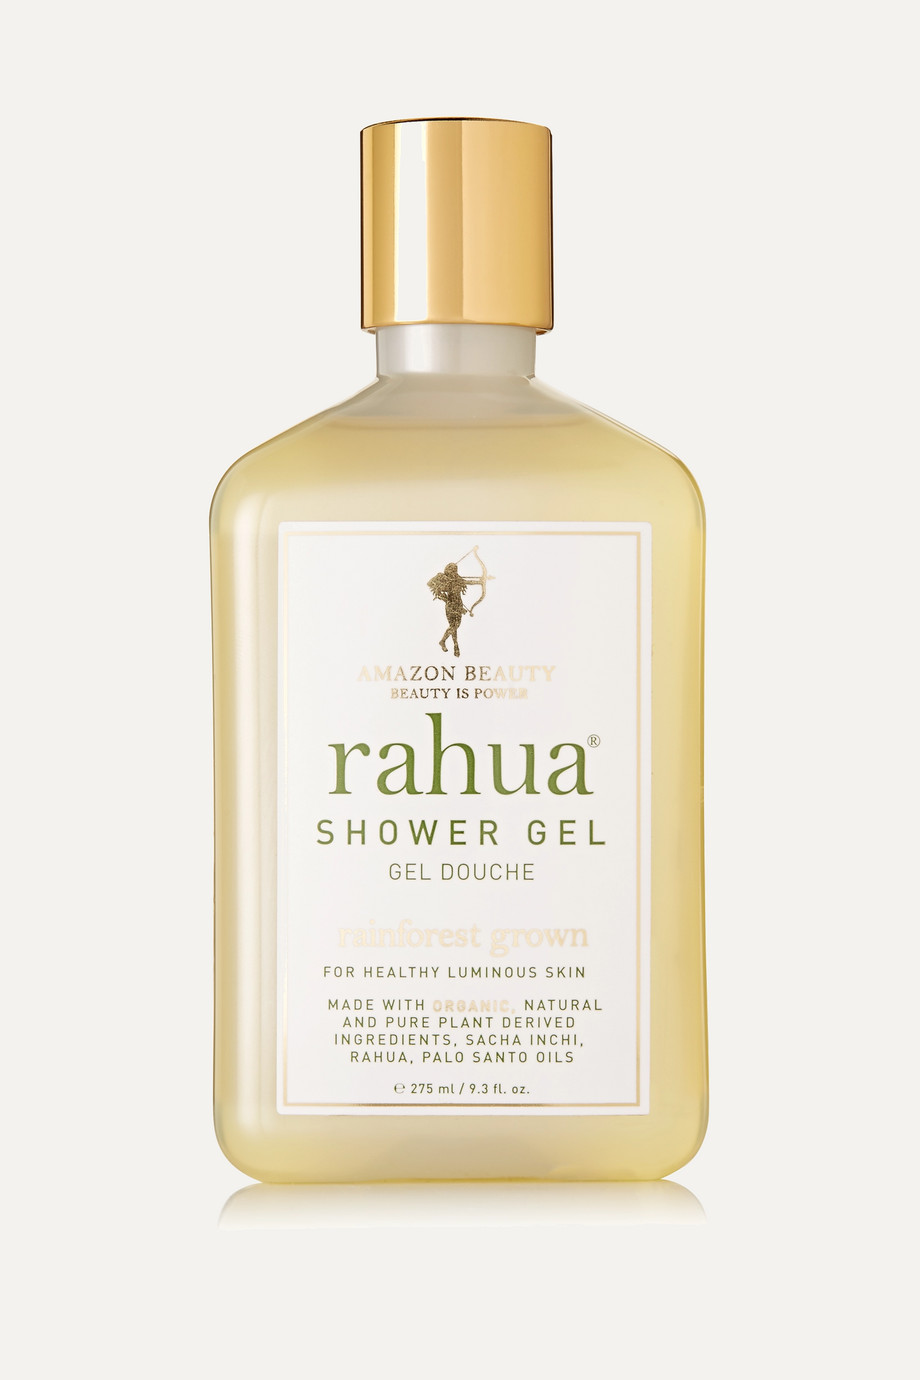 Rahua Body Shower Gel, 275ml